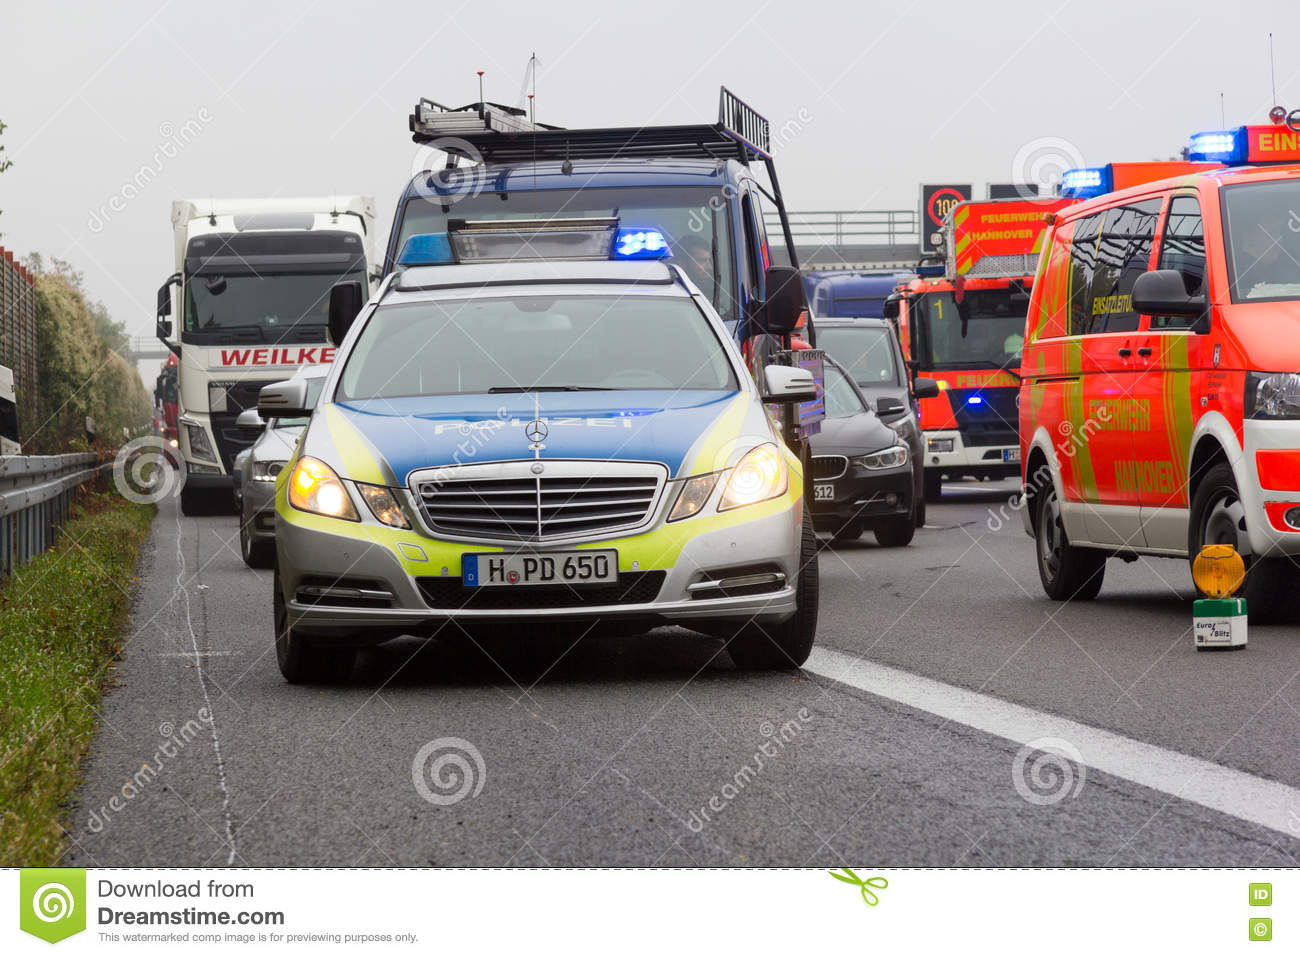 German police car stands on freeway a2 by a truck crash near Hannover.